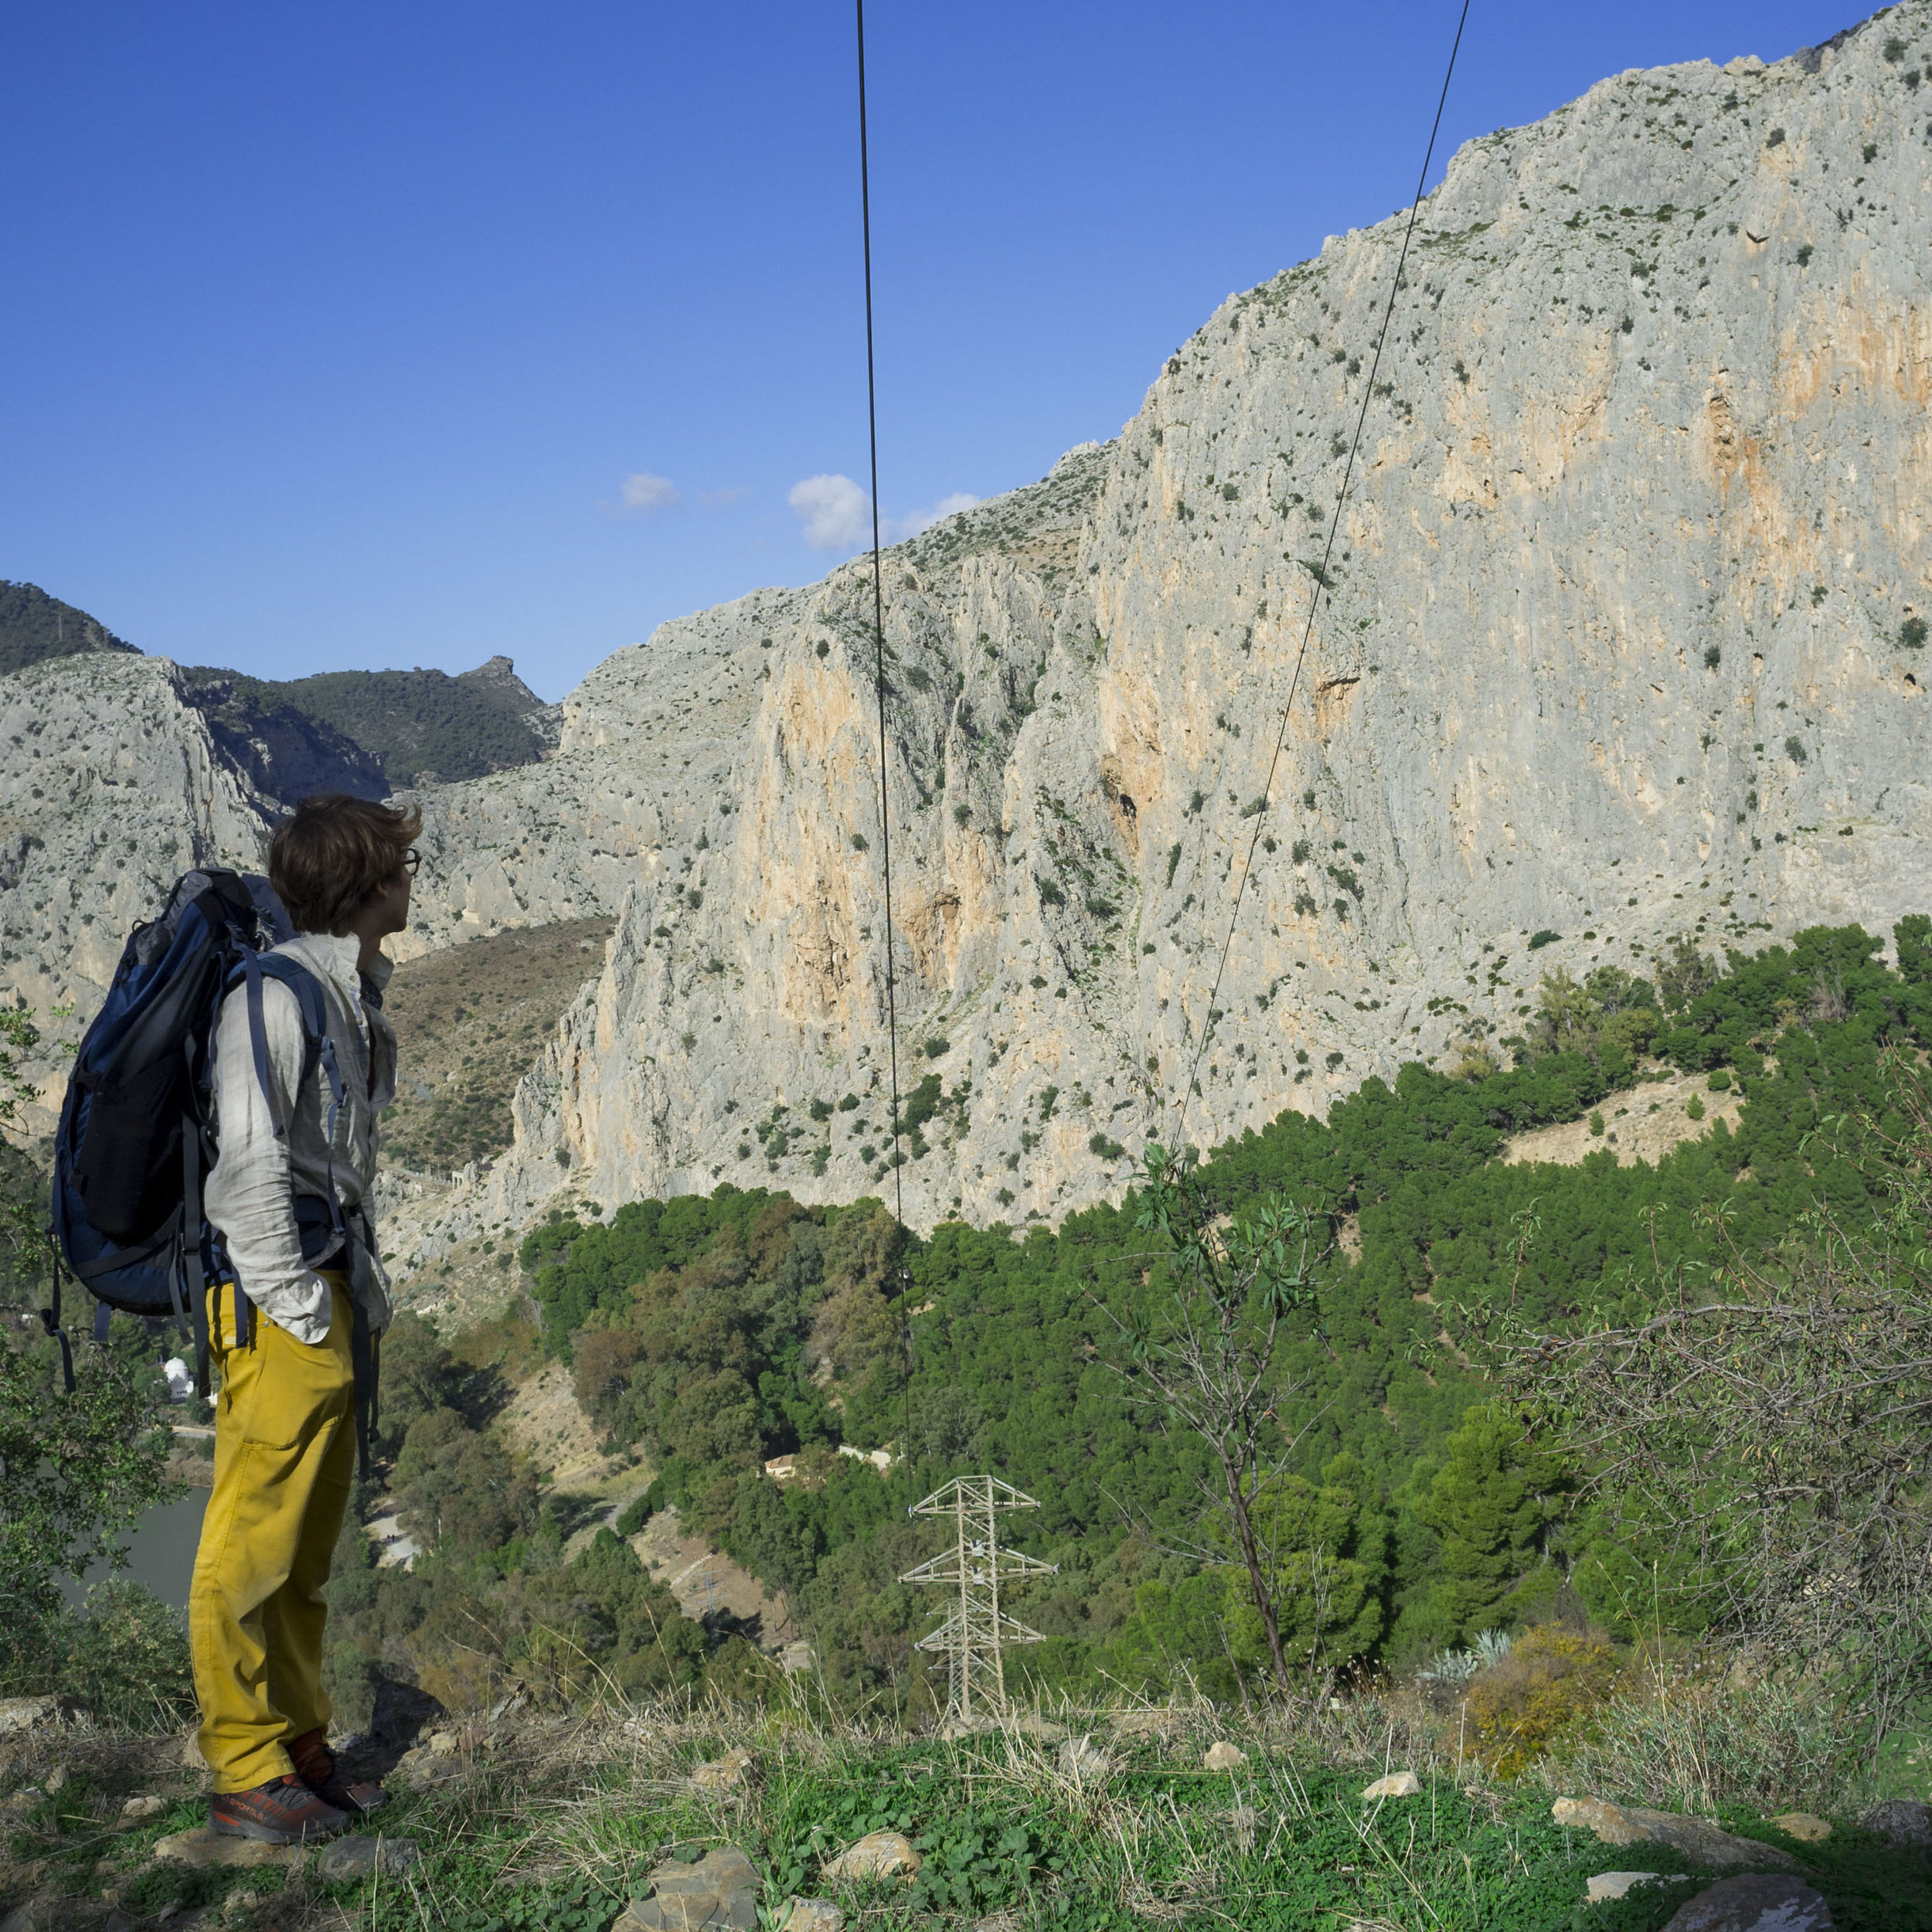 El Chorro Part III - The final part of your first audio climbing experience!